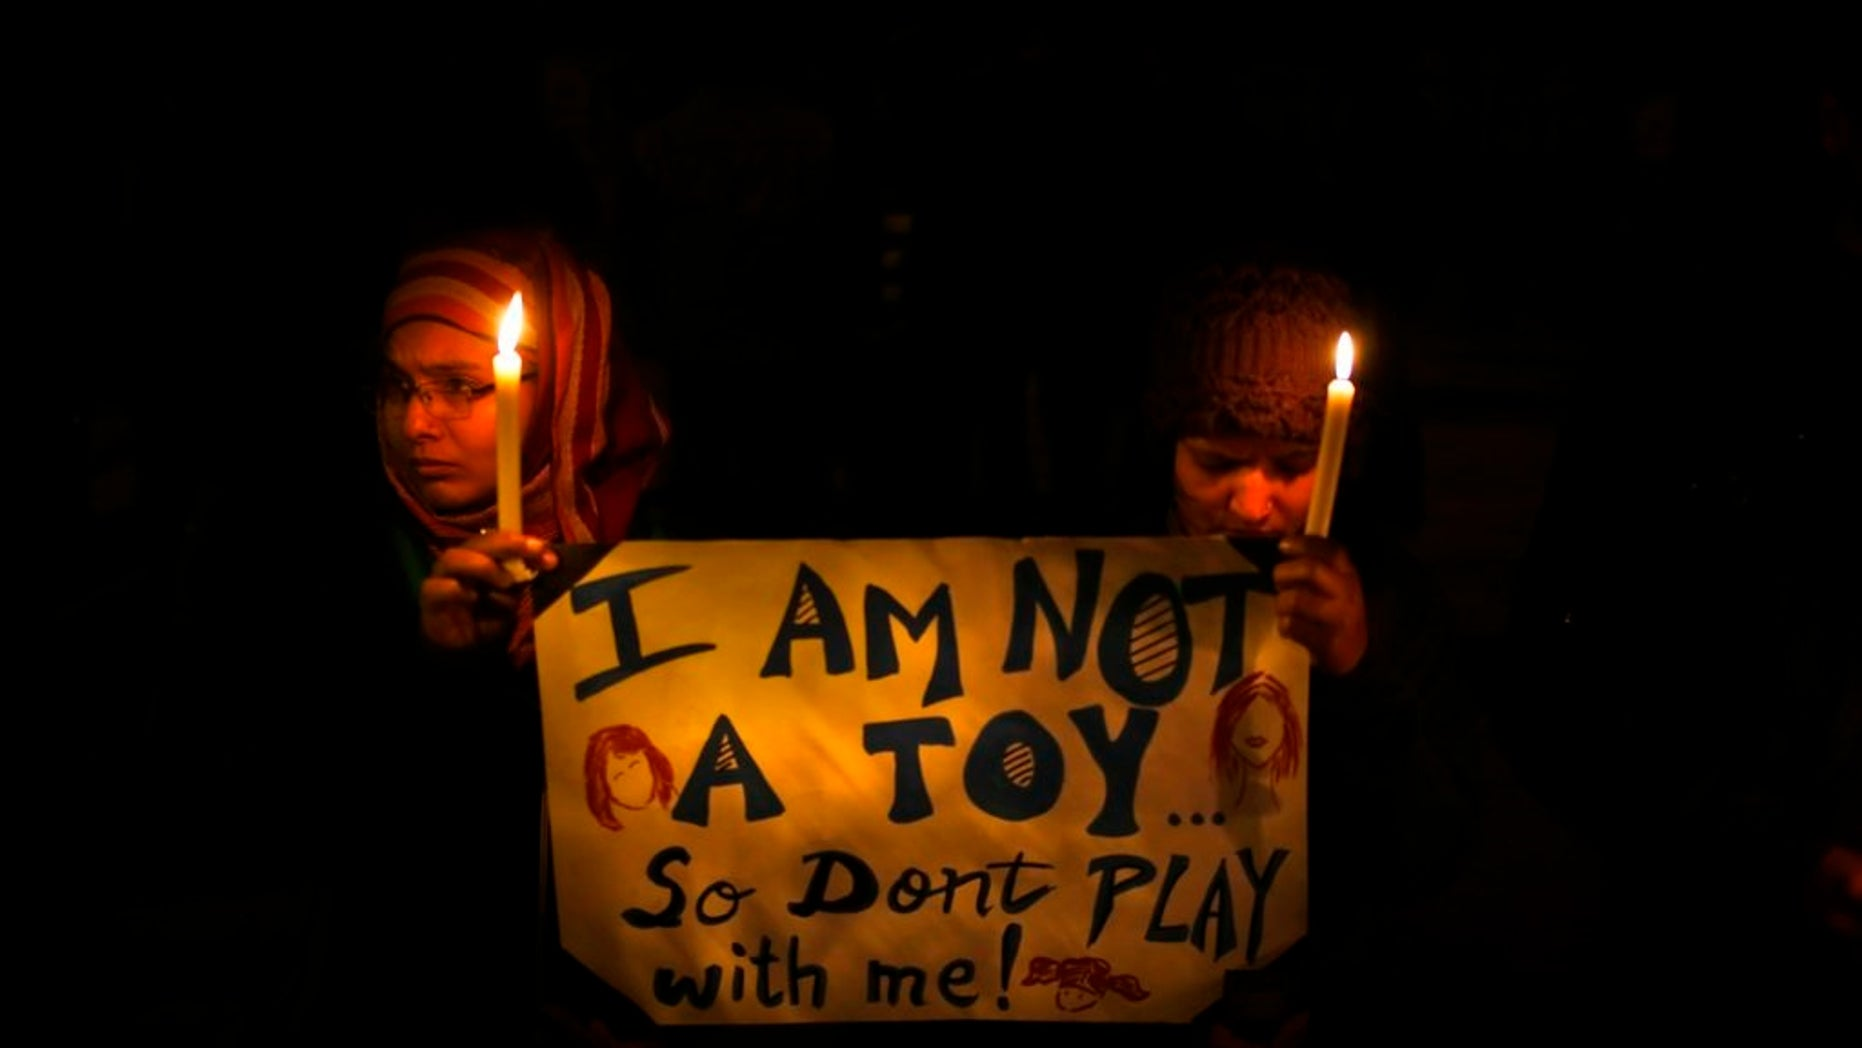 People in India hold a candlelight vigil in New Delhi to mourn the death of a gang rape victim in December 2012.